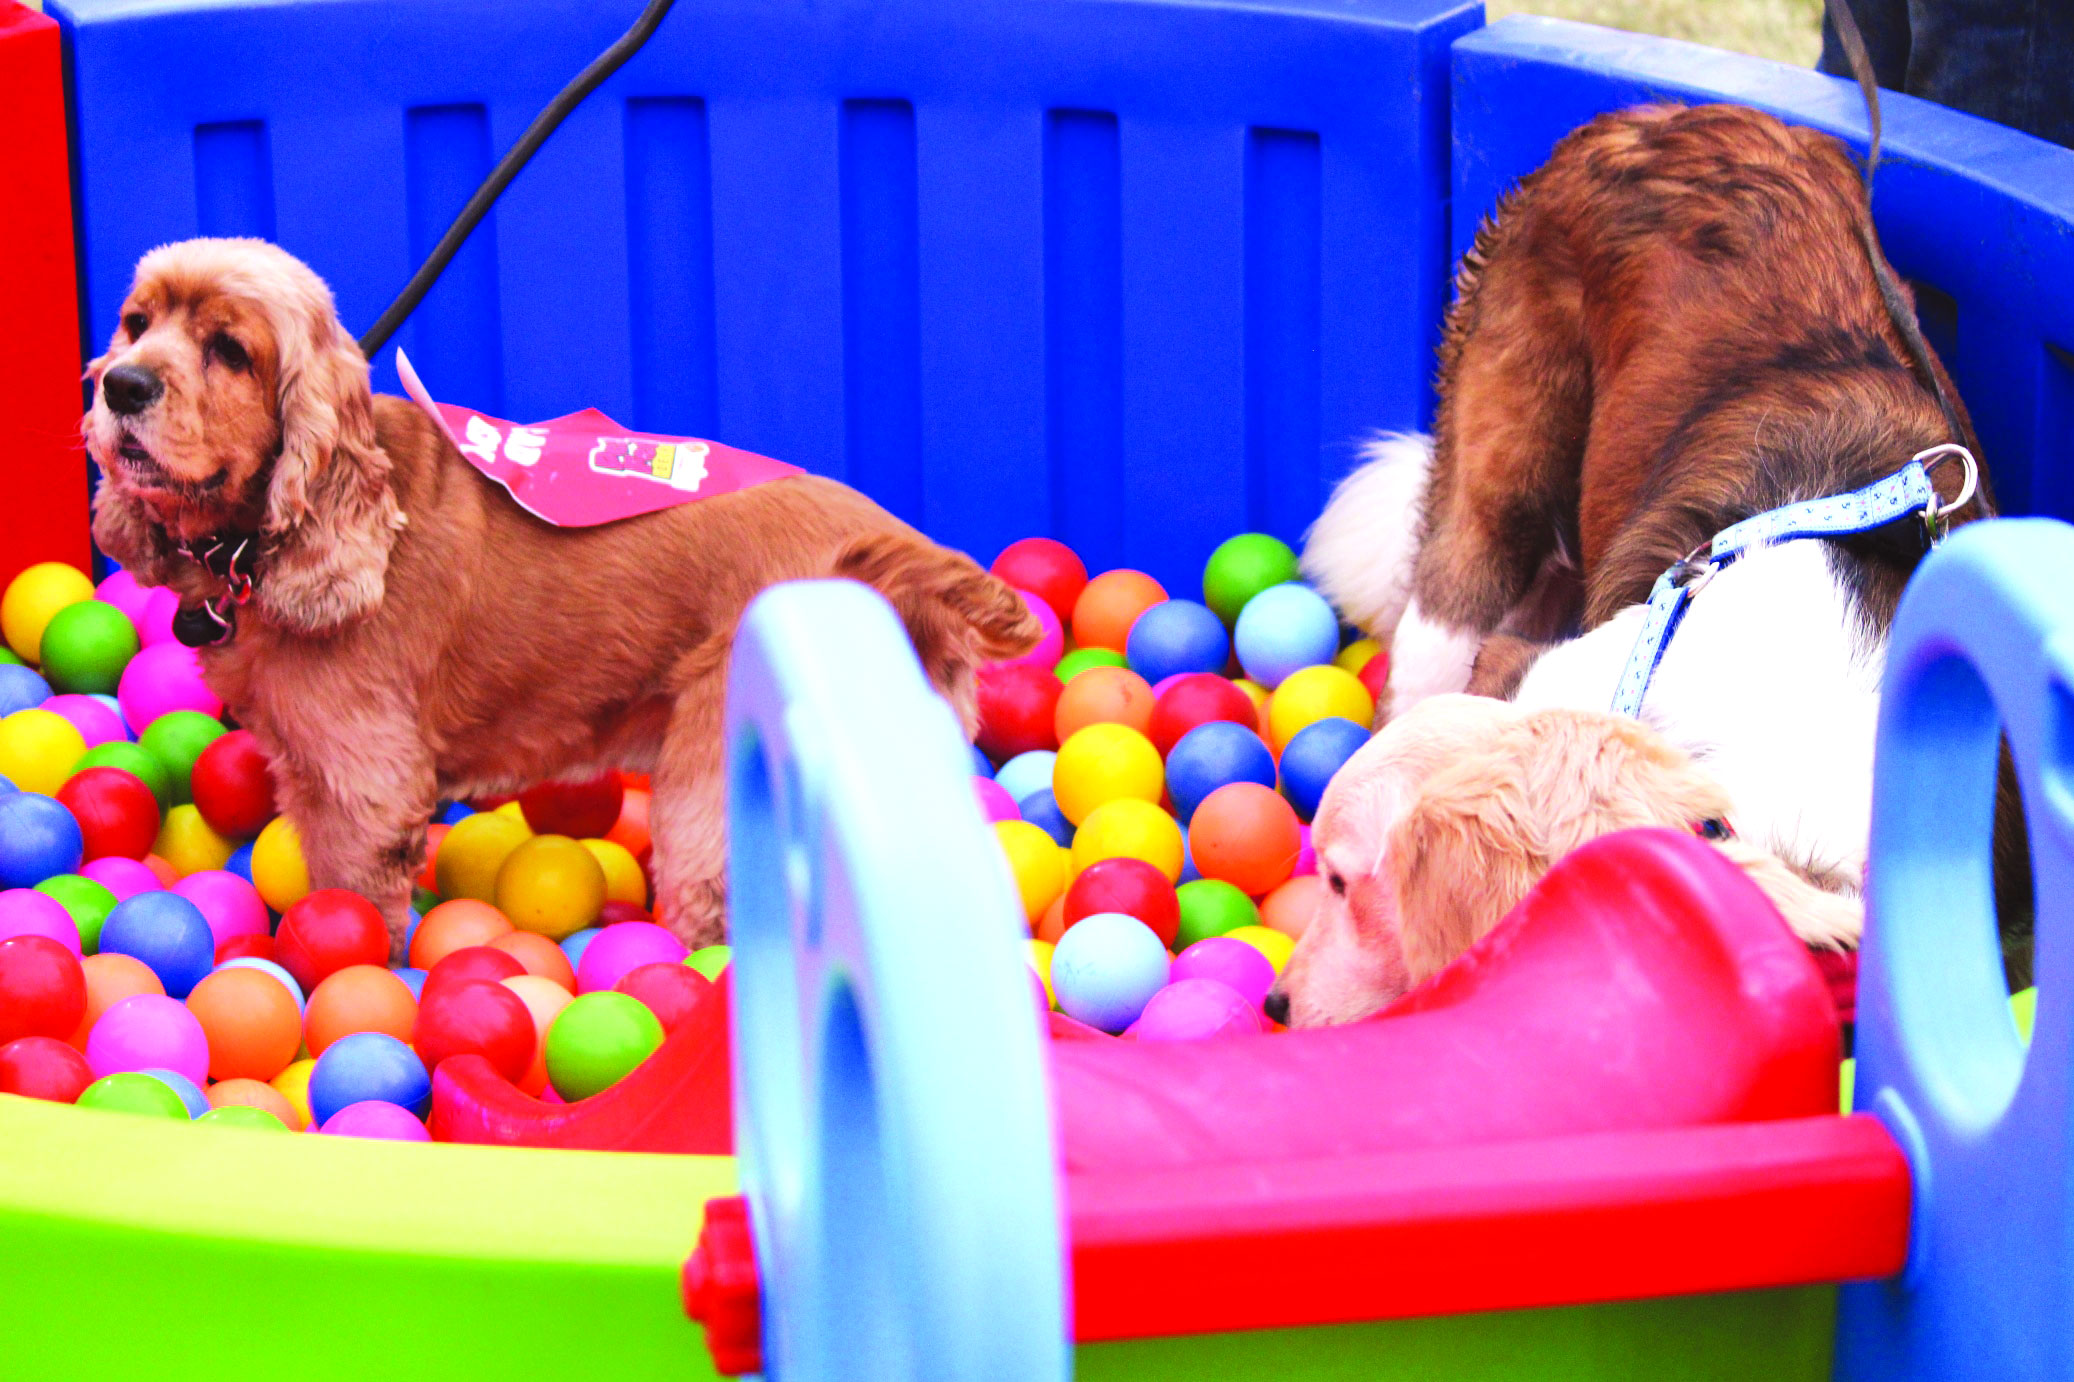 Pets steal the show at biggest fest